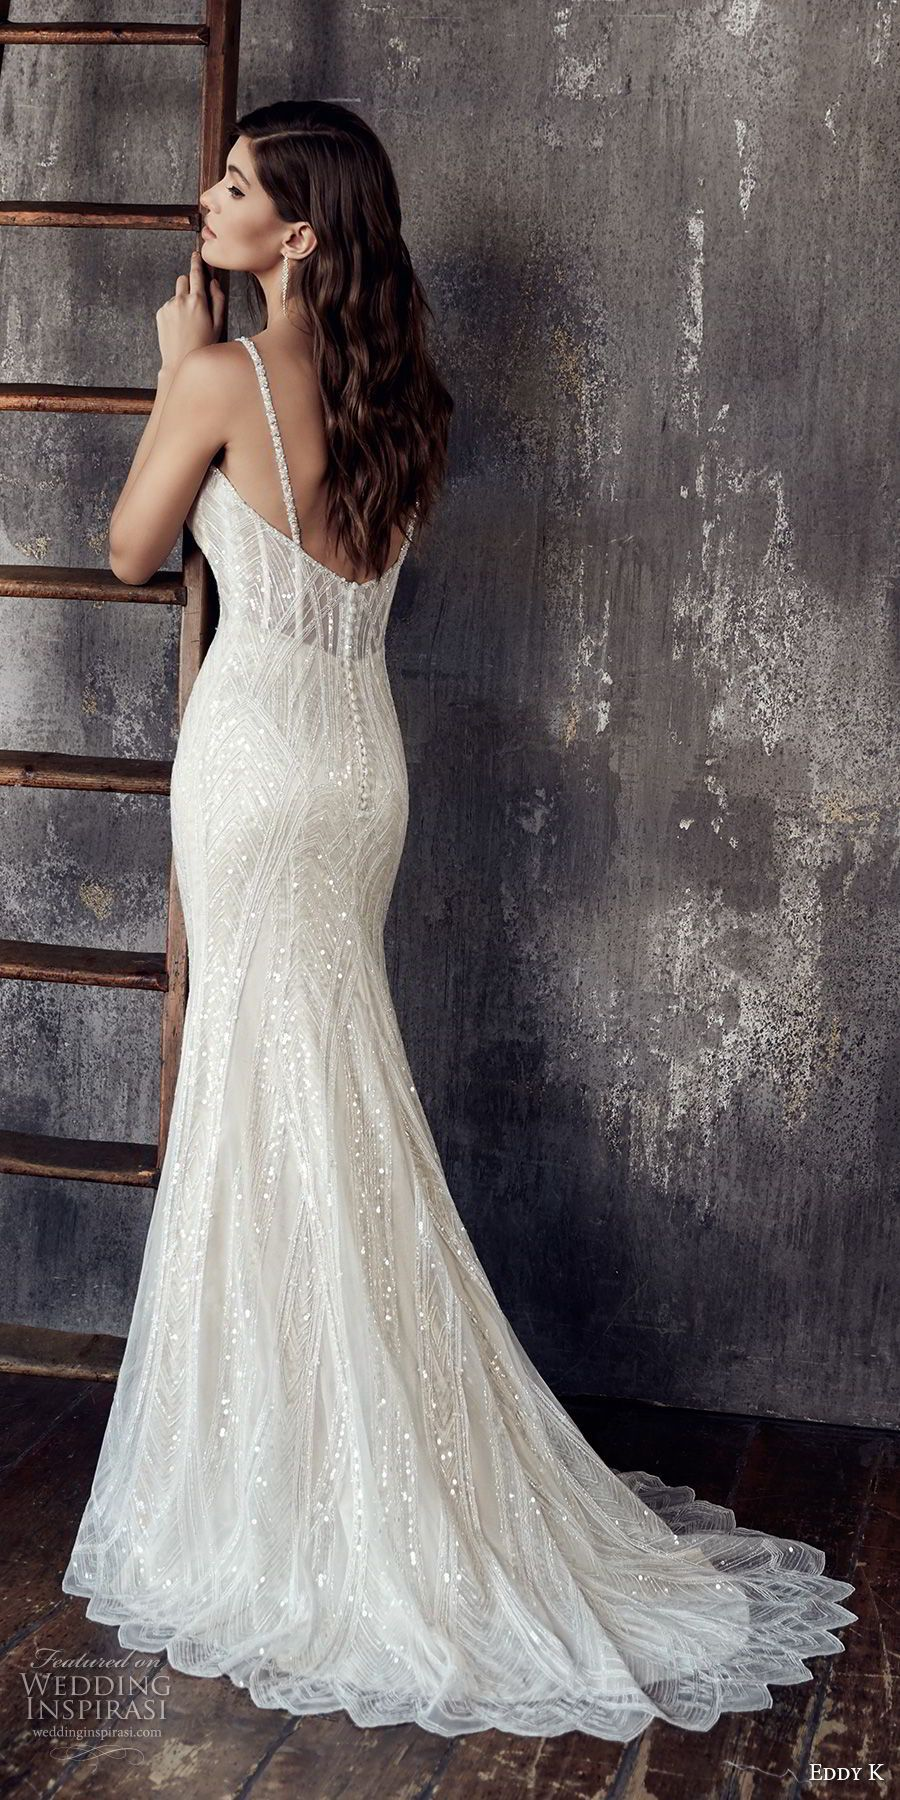 Eddy k couture wedding dresses wedding dress weddings and gowns